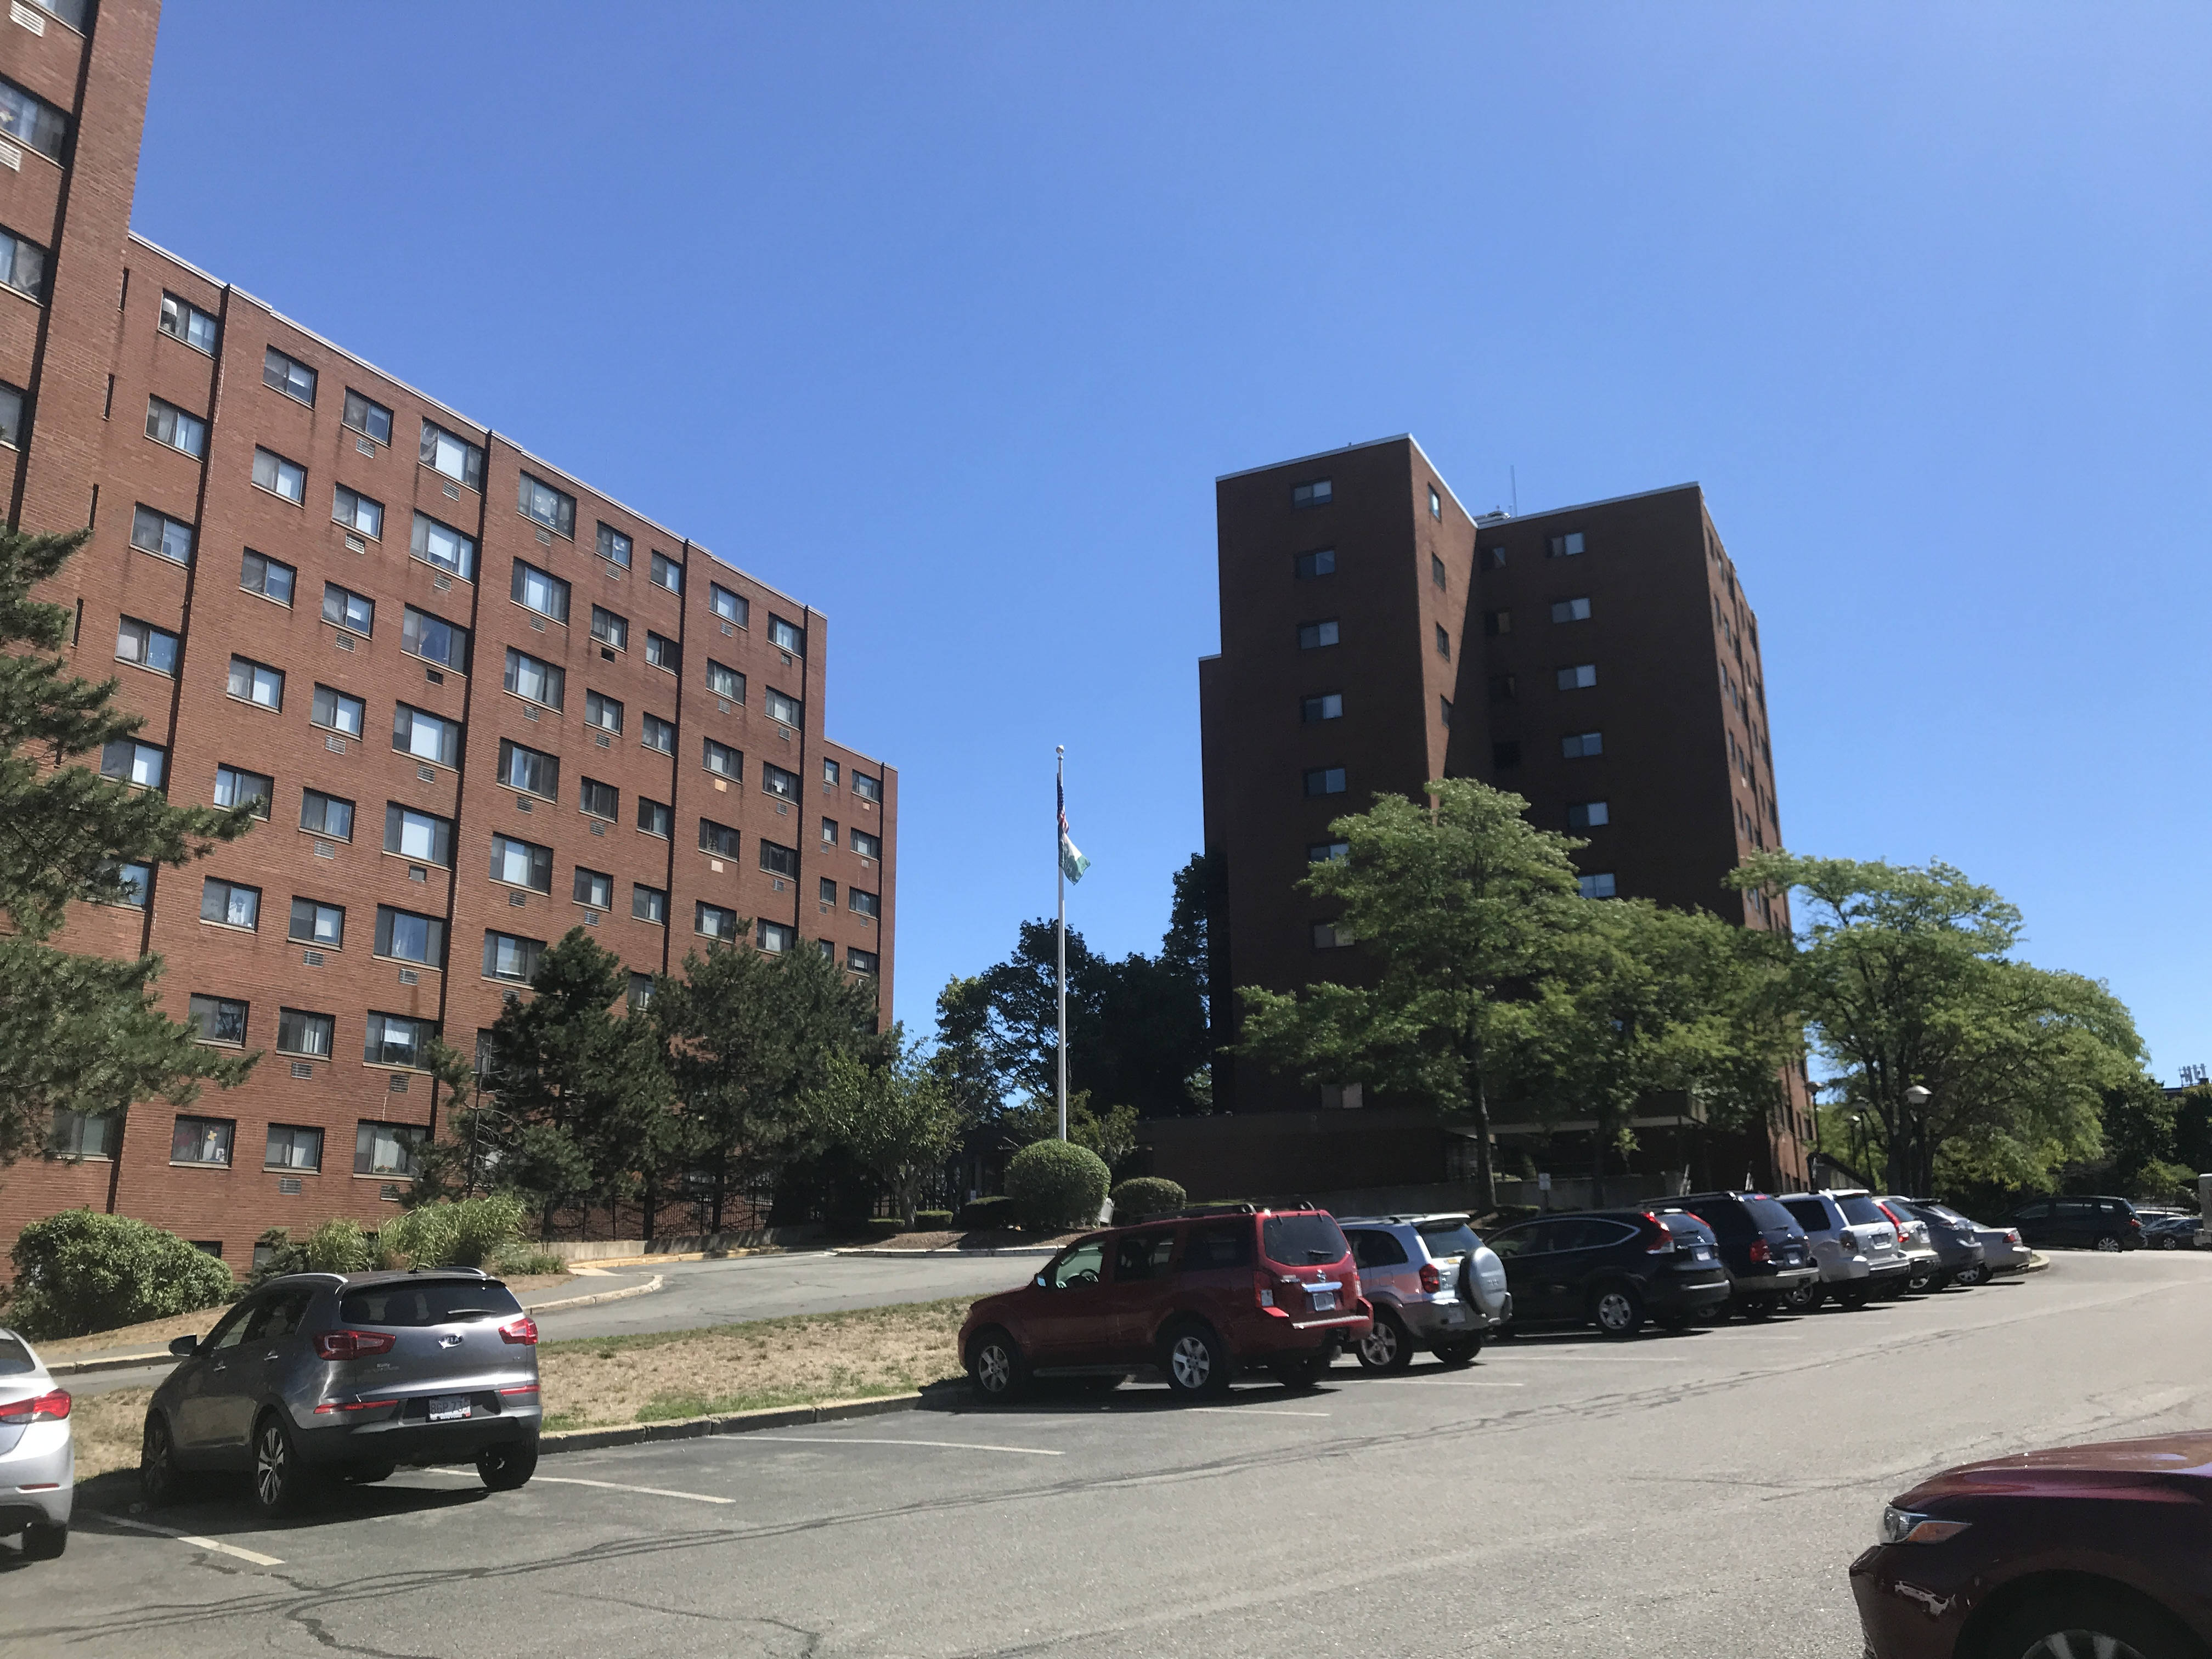 A view from the Salem Heights parking lot, showing two large rectangular brick buildings, approximately eight stories high